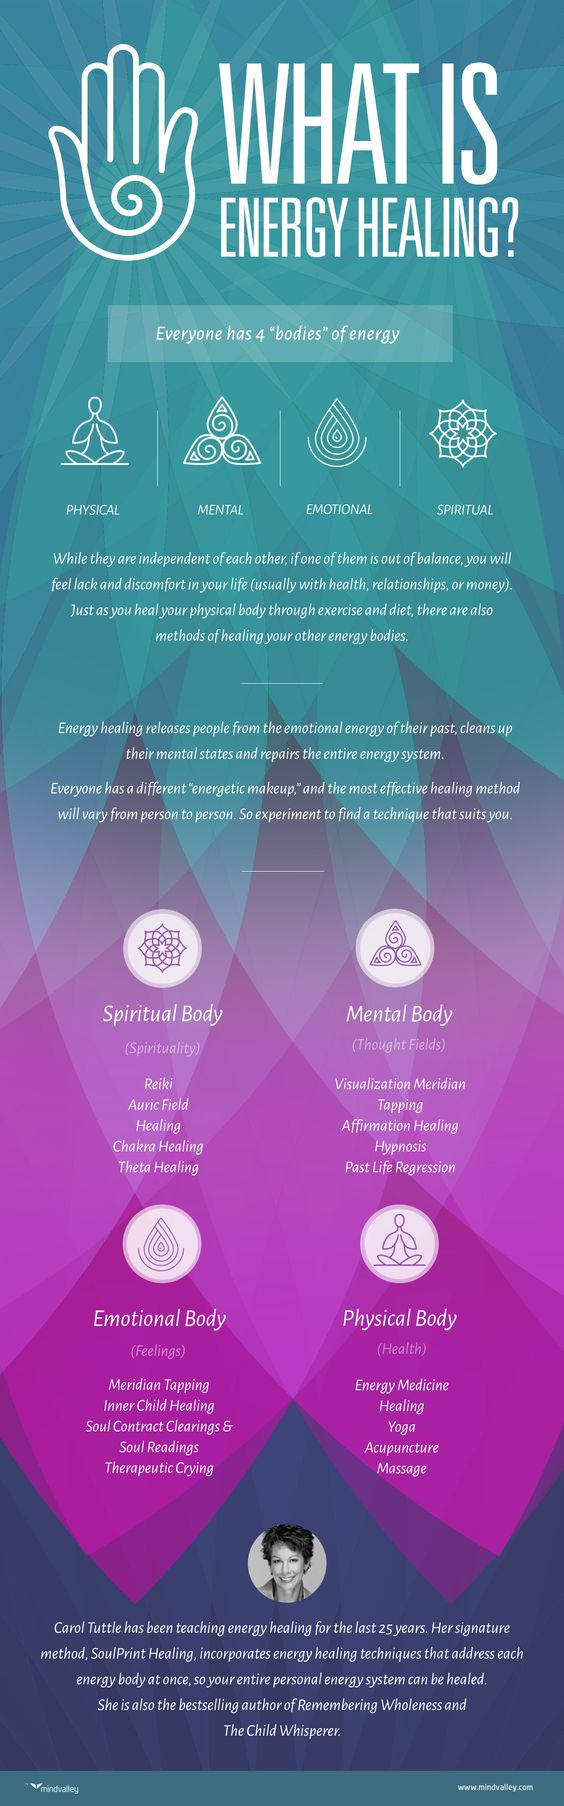 What Is Energy Healing? #infographic #Health #Yoga #Healing